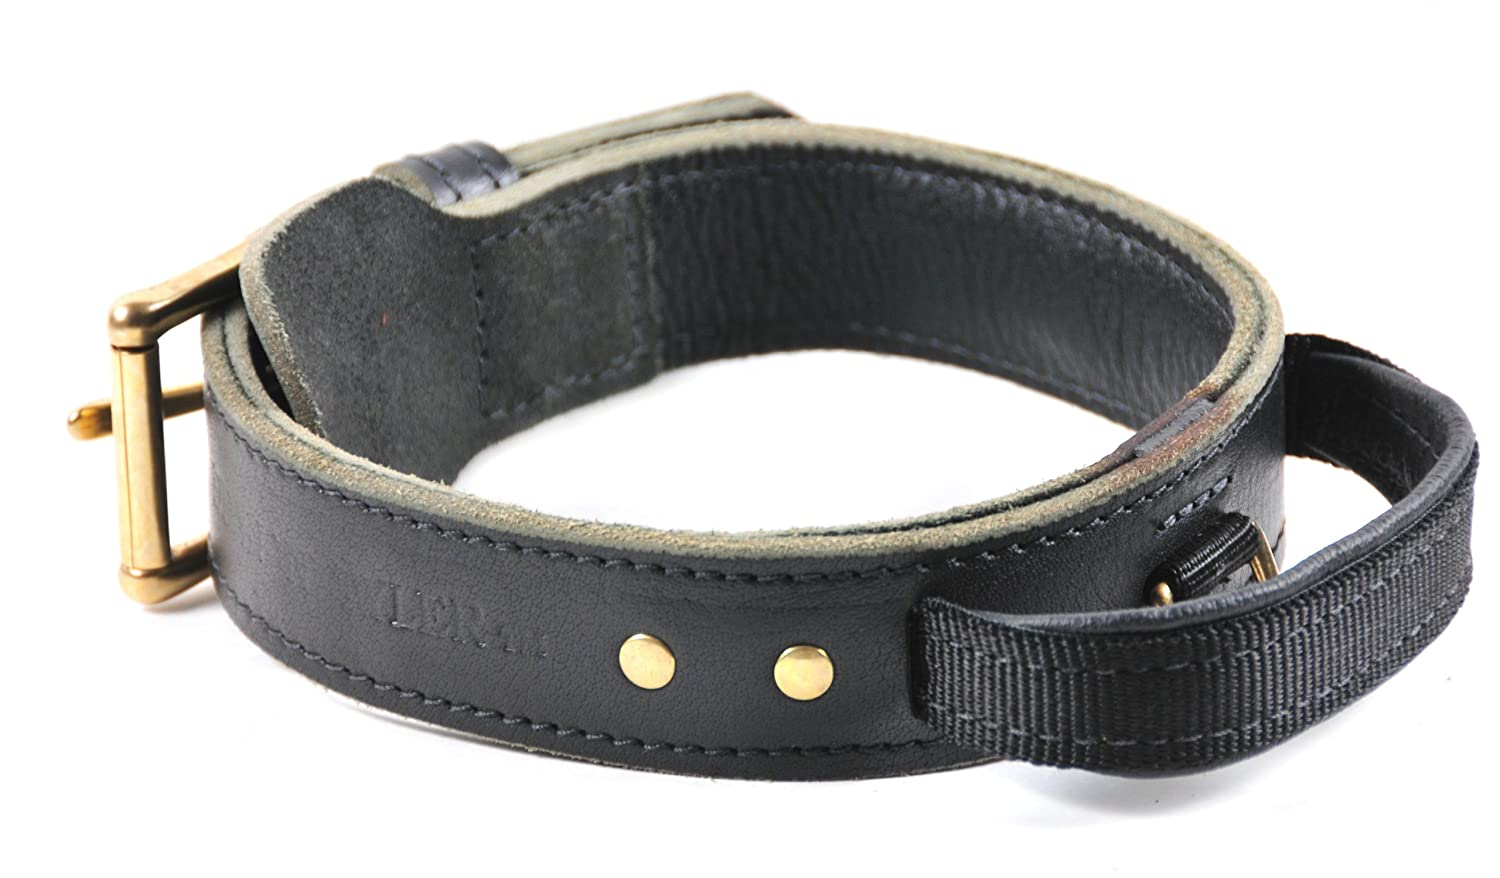 Dean and Tyler SIMPLICITY , Leather Dog Collar with Solid Brass Hardware Black Size 24-Inch by 1-3 4-Inch, Fits Neck 22-Inch to 26-Inch